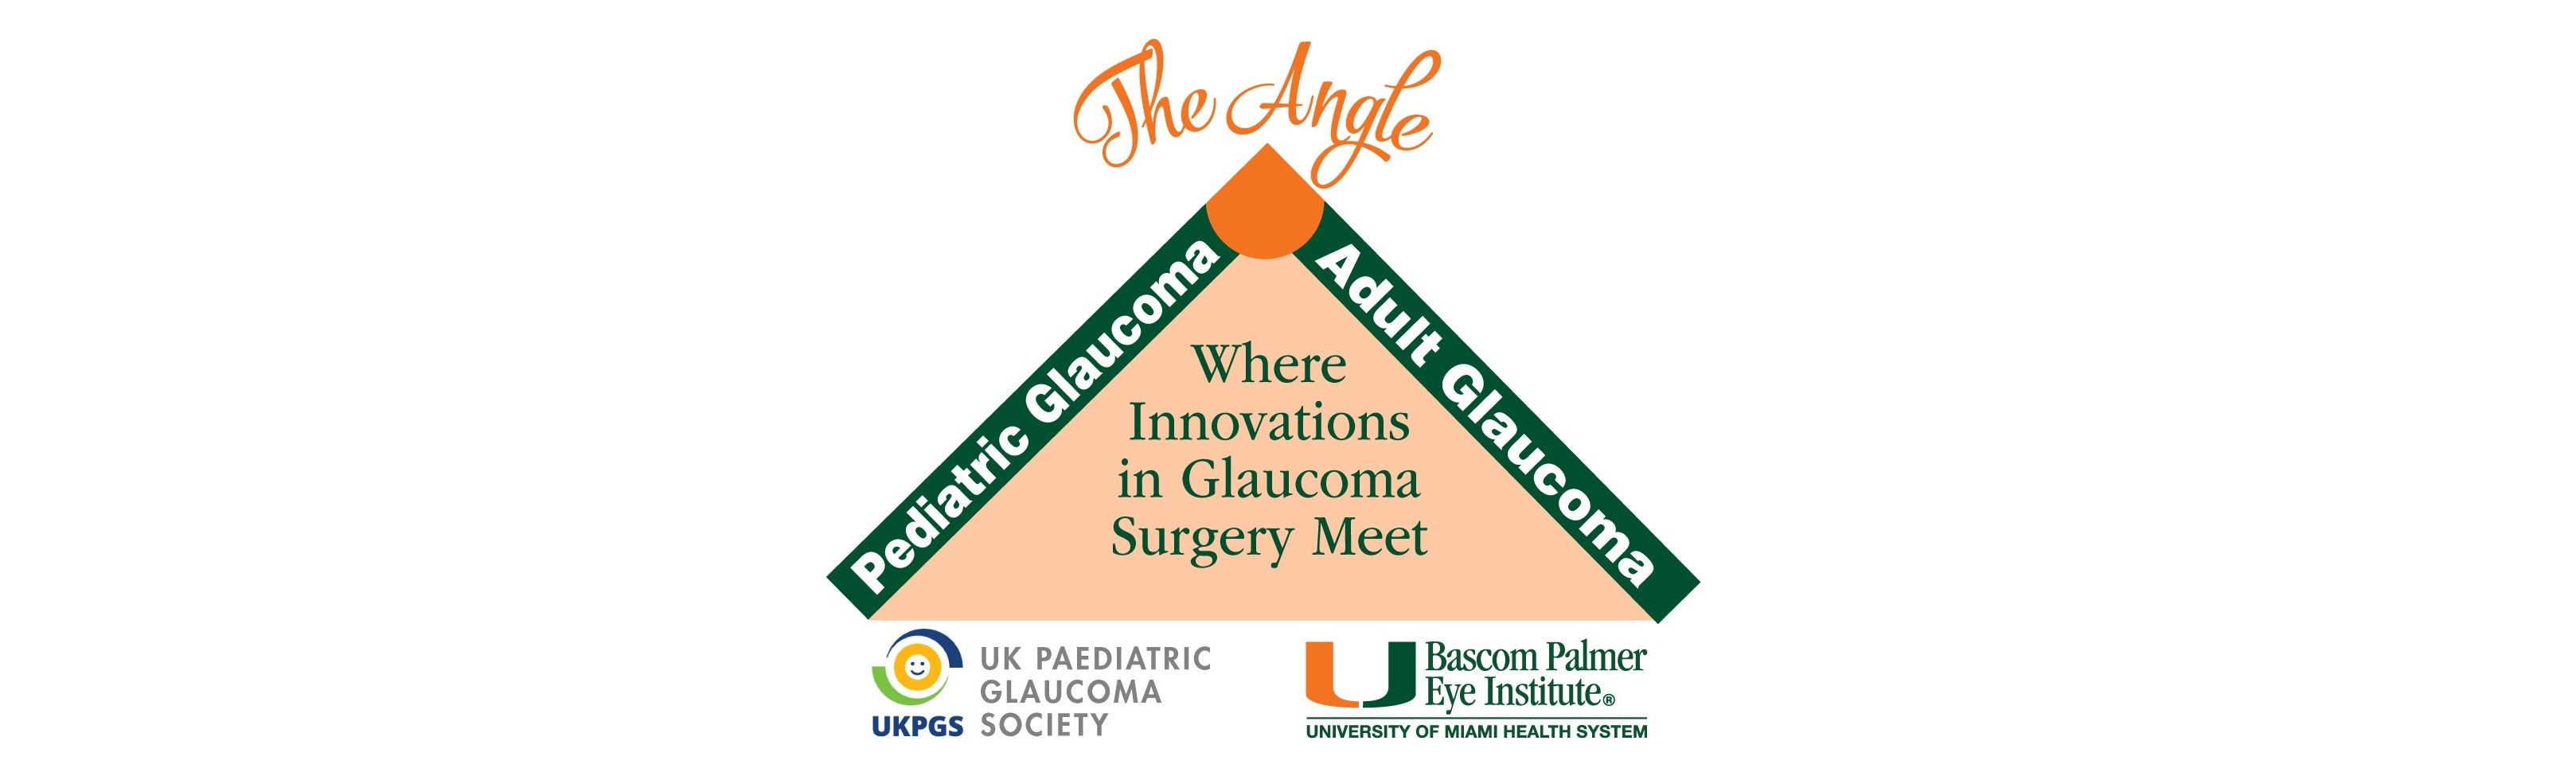 Bascom Palmer 2017 Glaucoma at the Angle: Where Innovations in Glaucoma Surgery Meet: Presented in conjunction with the UK Paediatric Glaucoma Society